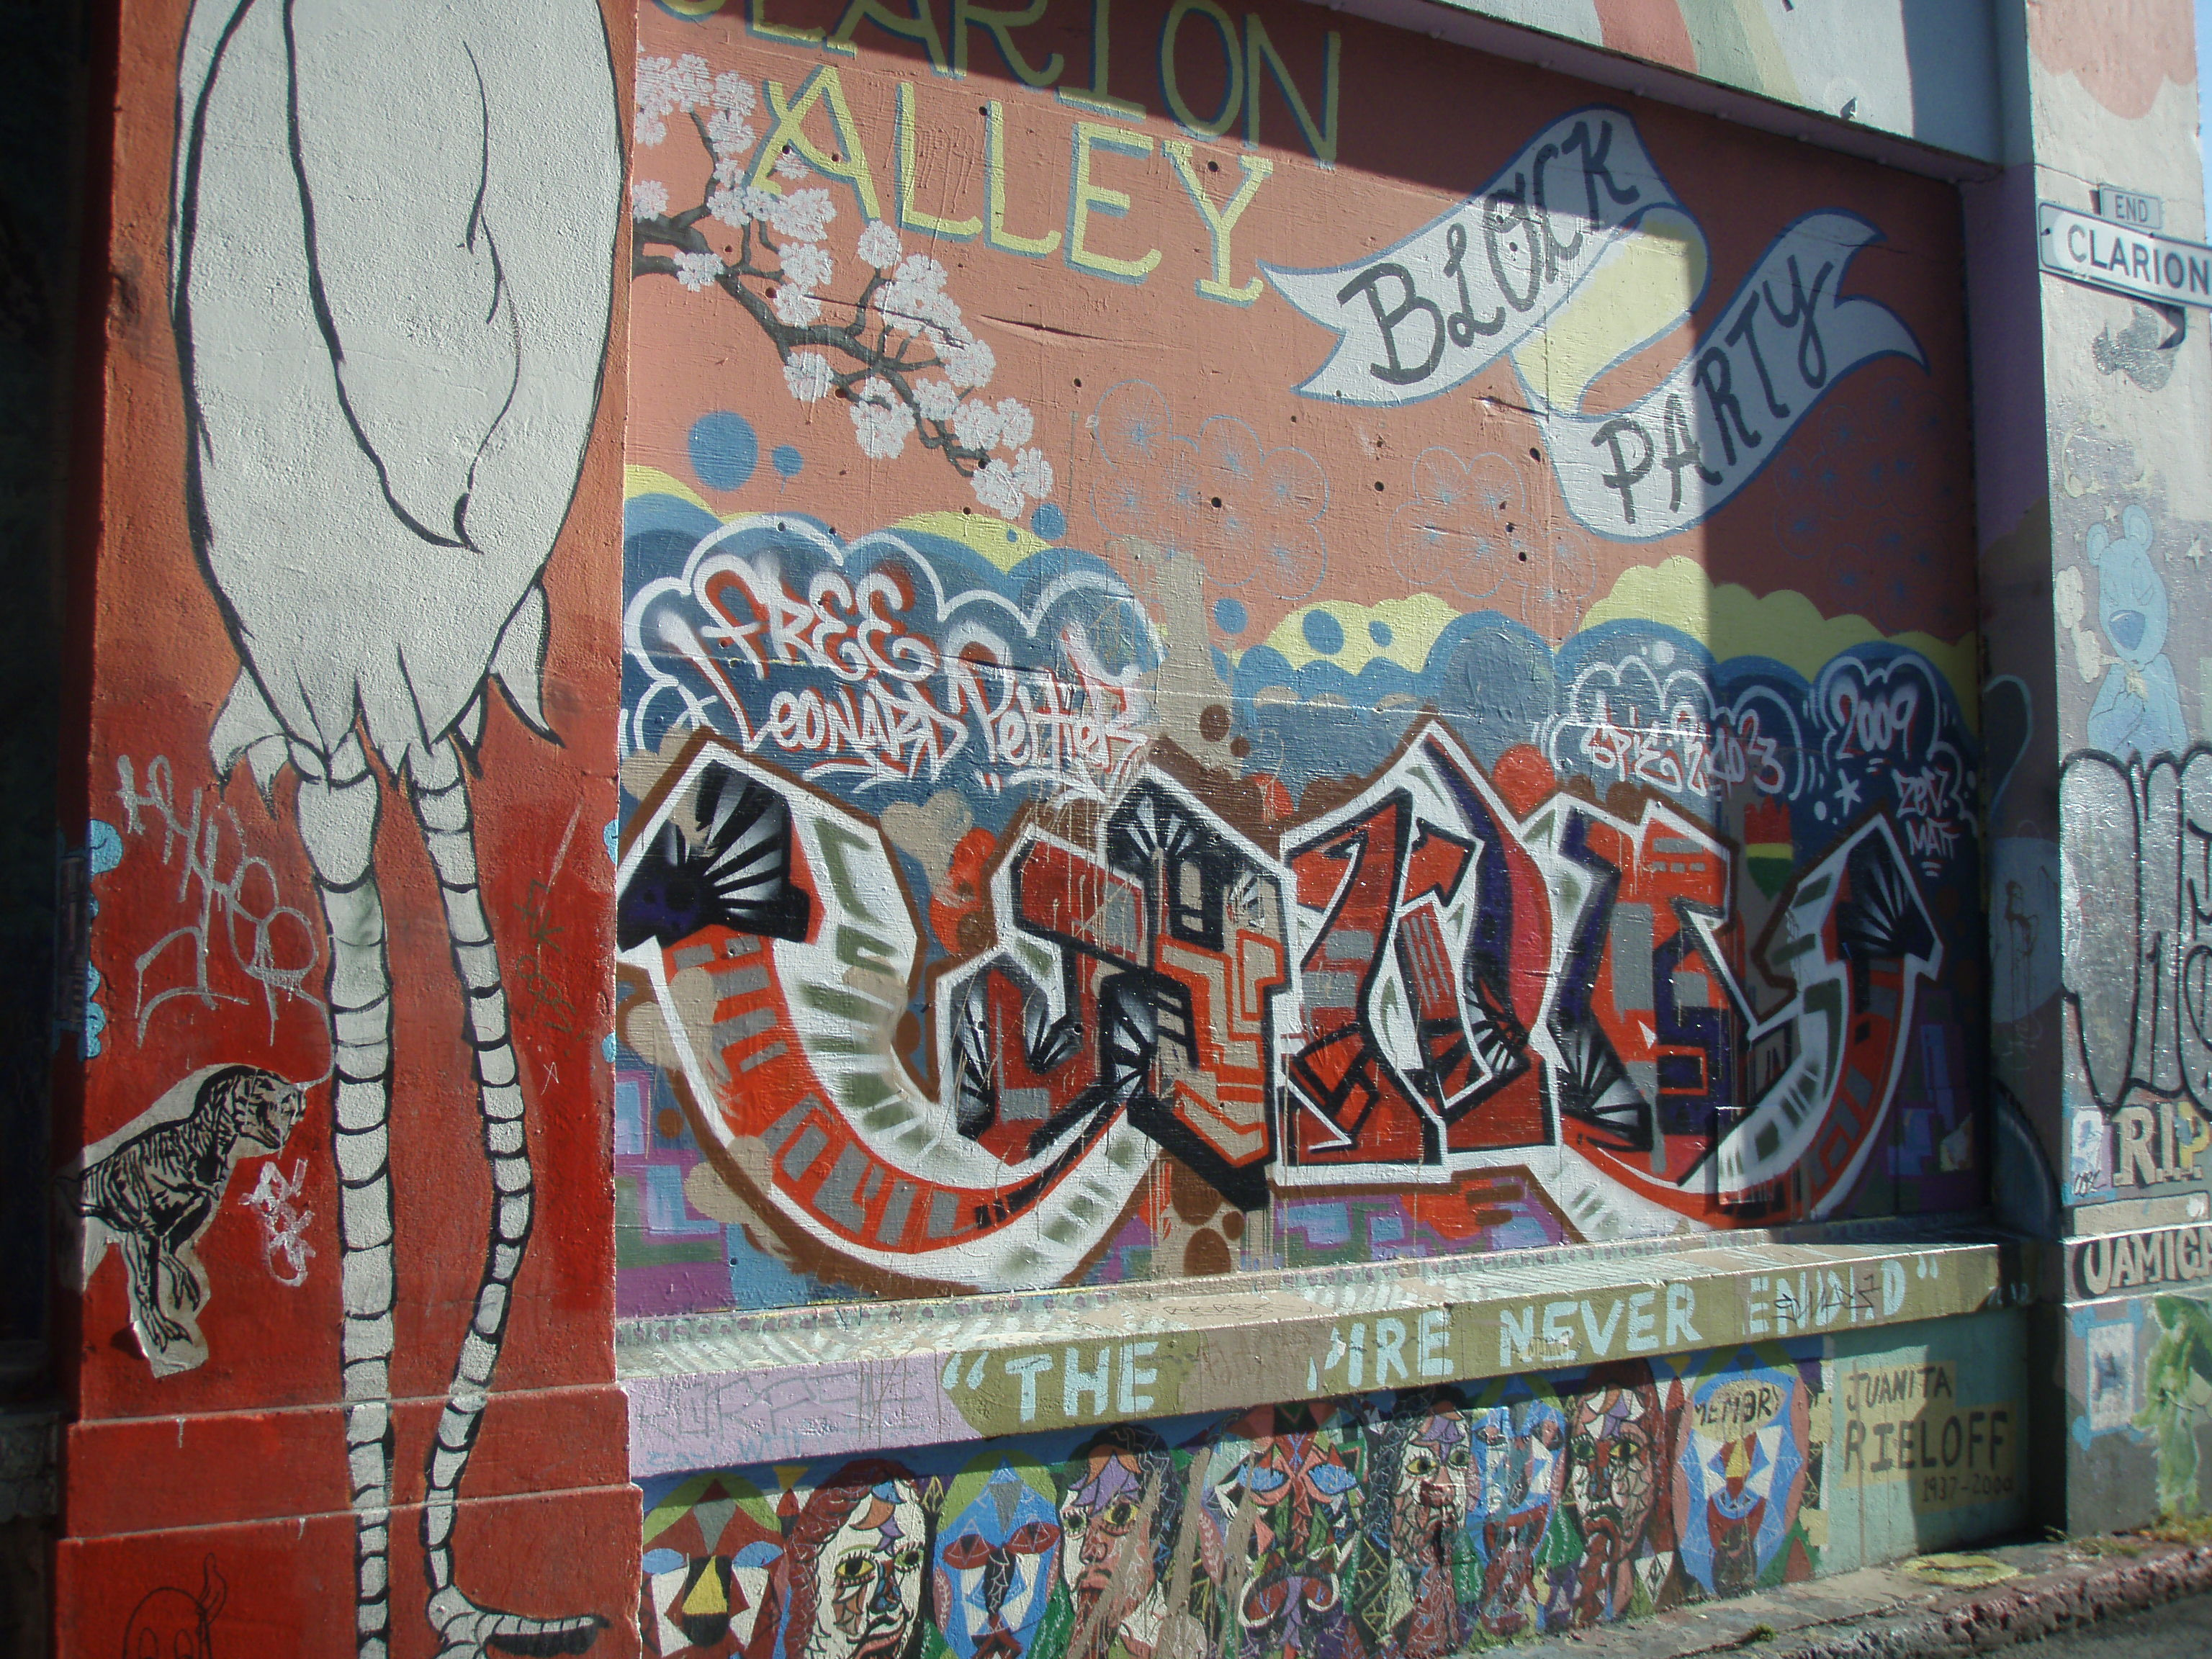 Just like the sign says: Mission Alley